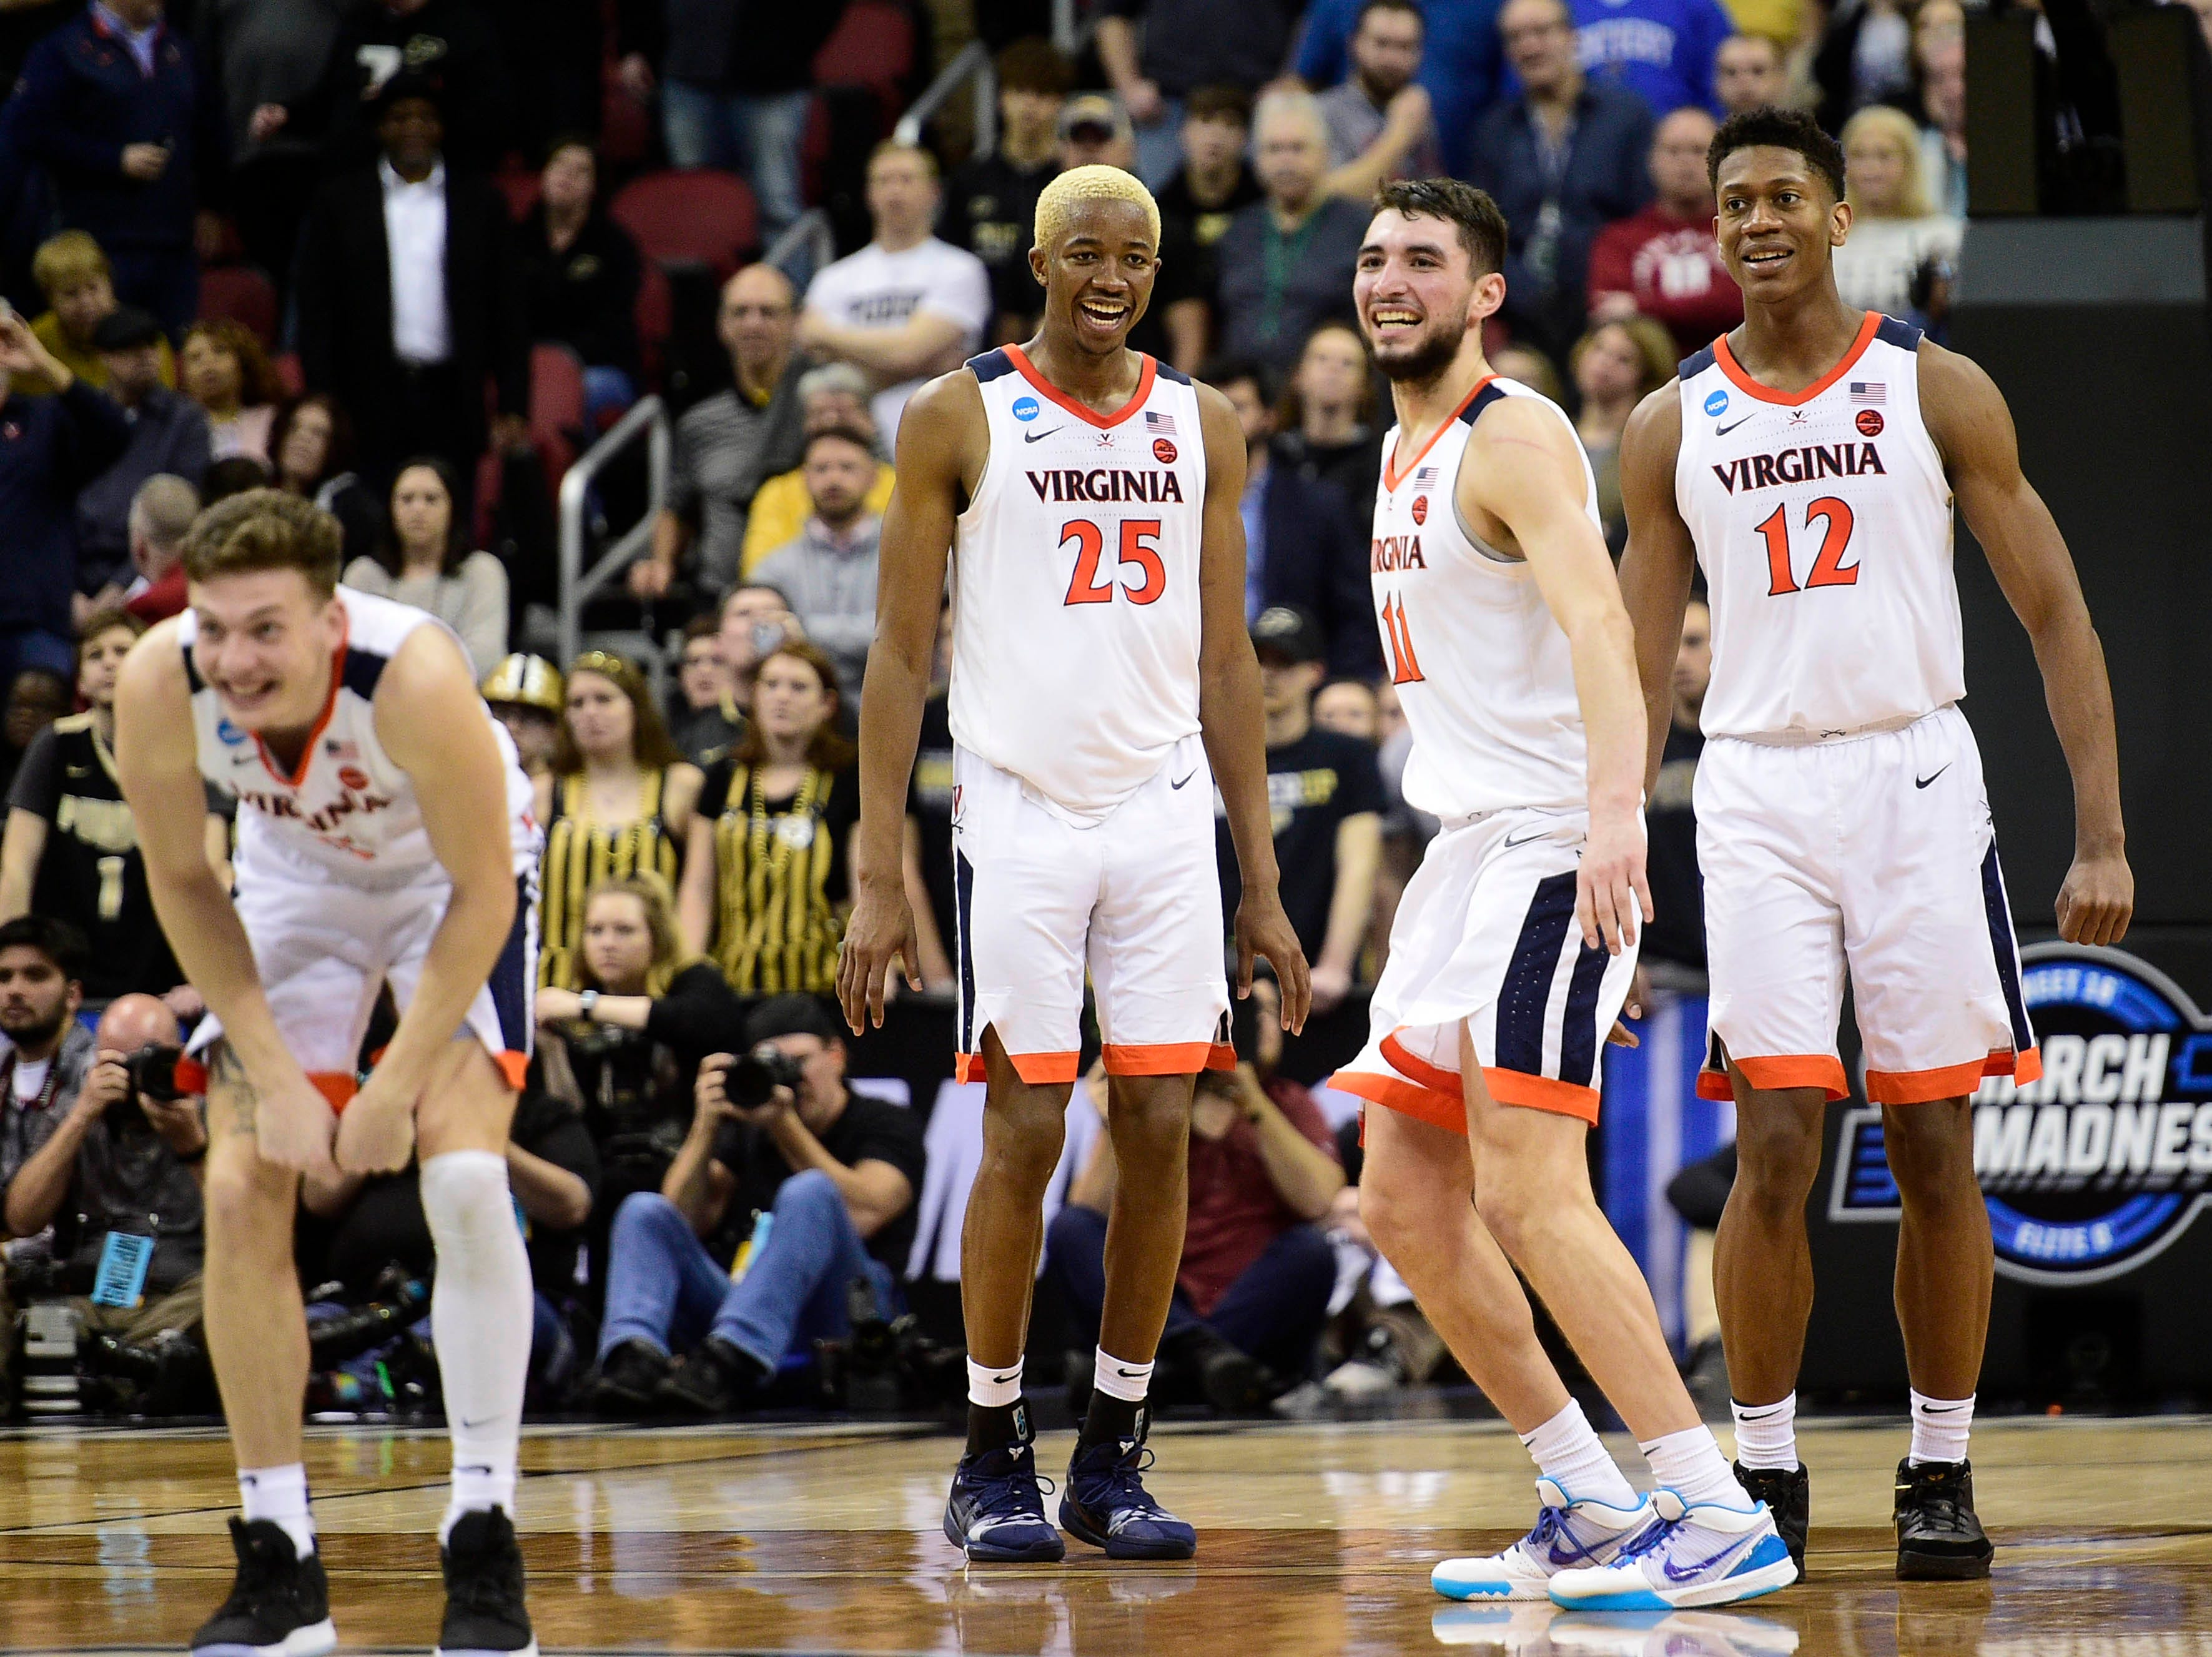 Mar 30, 2019; Louisville, KY, United States; Virginia Cavaliers guard Ty Jerome (11) celebrates with forward Mamadi Diakite (25) and guard De'Andre Hunter (12) after the win over the Purdue Boilermakers in overtime in the championship game of the south regional of the 2019 NCAA Tournament at KFC Yum Center. Mandatory Credit: Thomas J. Russo-USA TODAY Sports